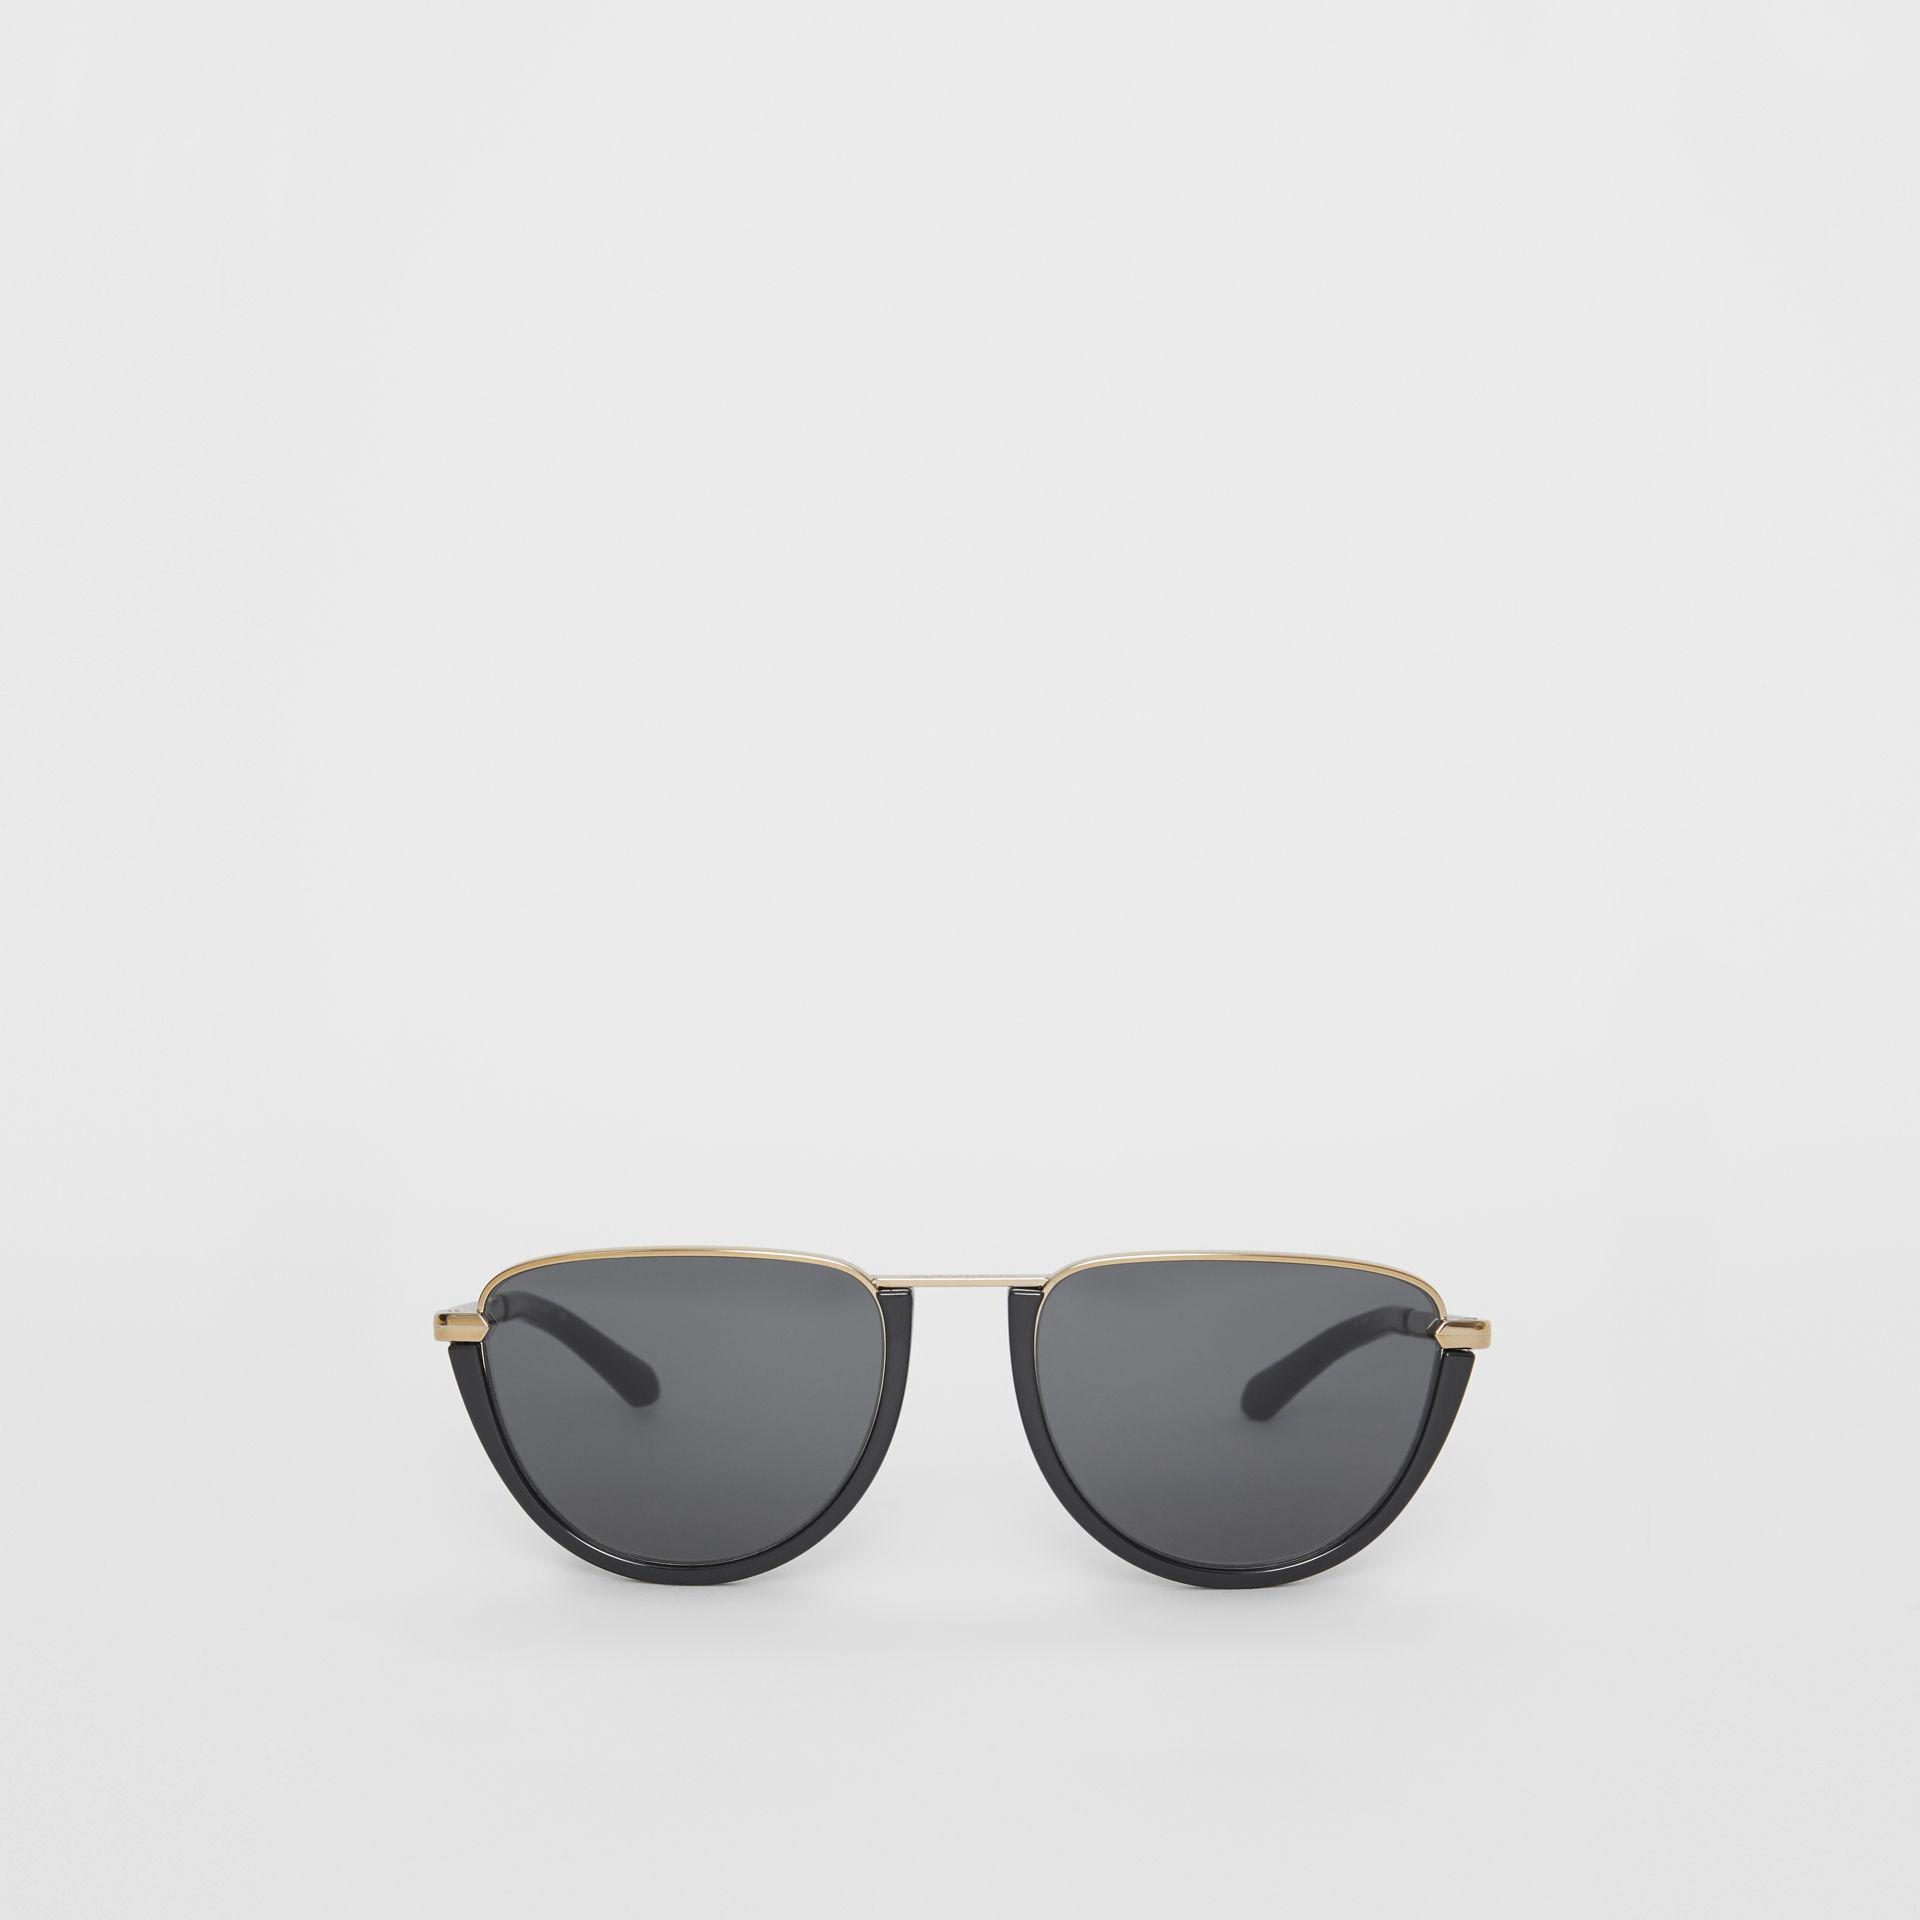 0e86592802 Burberry - Black Half Moon Pilot Round Frame Sunglasses - Lyst. View  fullscreen